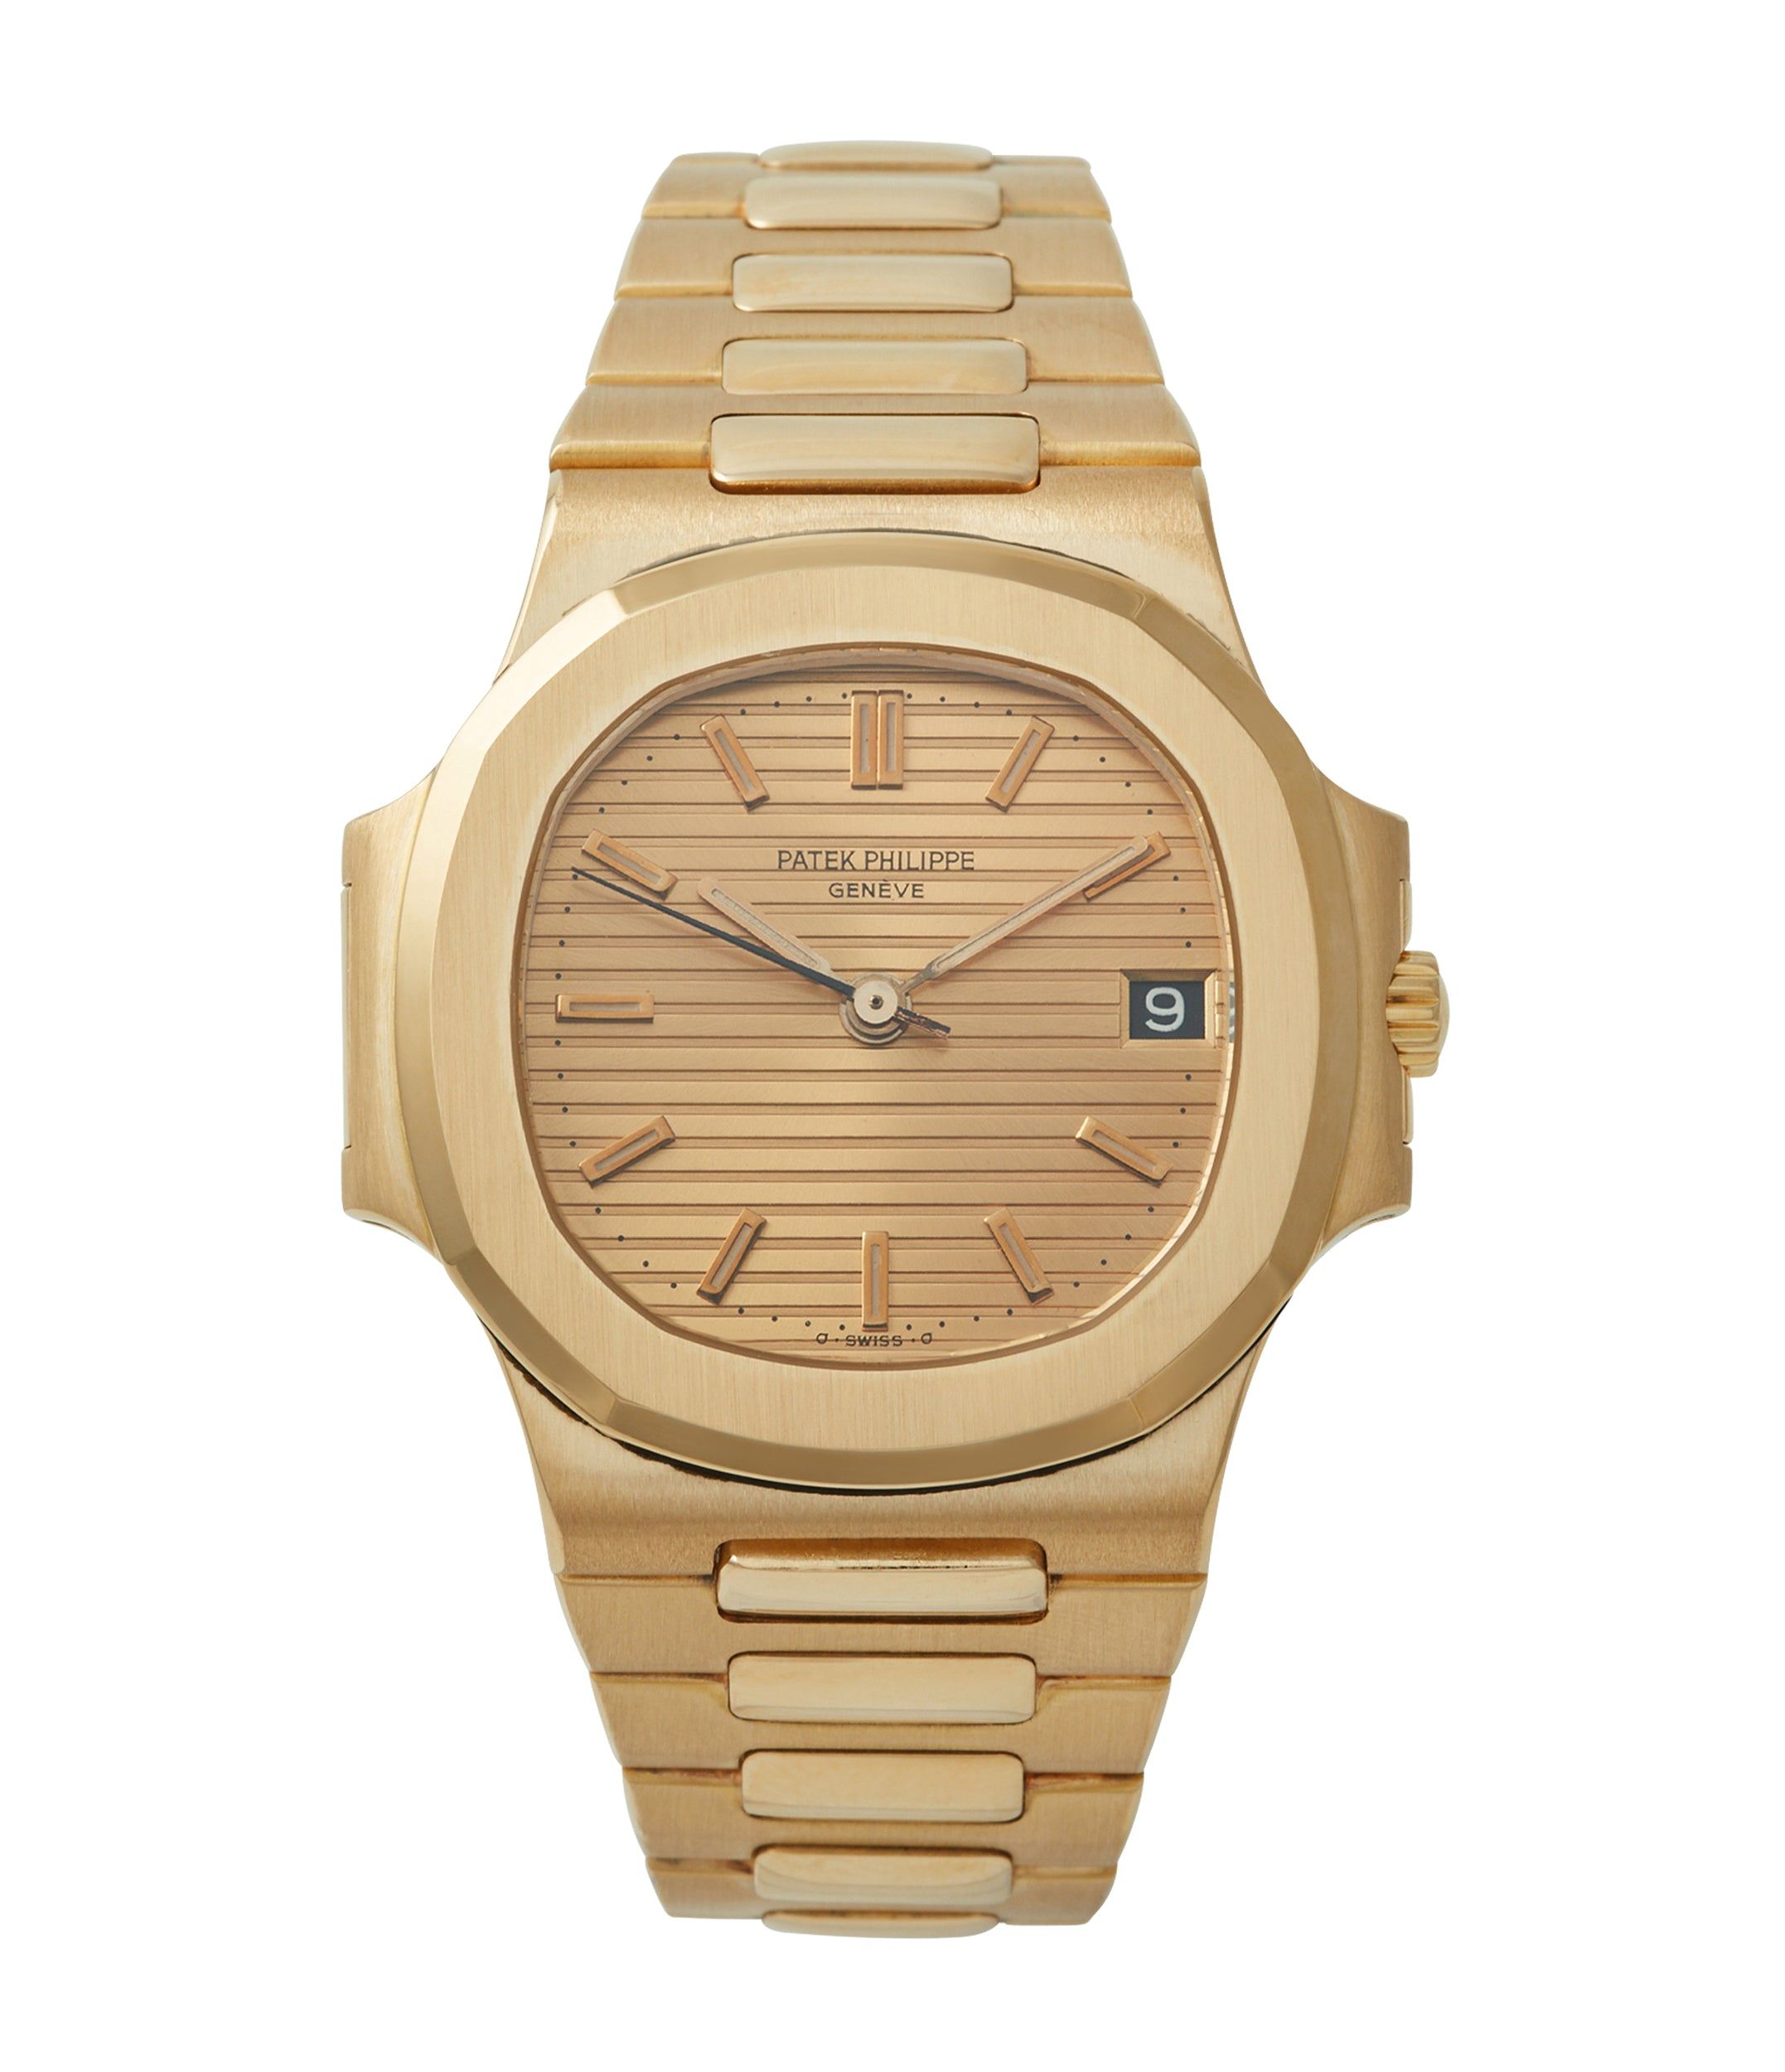 3800 Patek Philippe Nautilus yellow gold dark date disc luxury sports watch for sale online A Collected Man London UK specialist rare watches